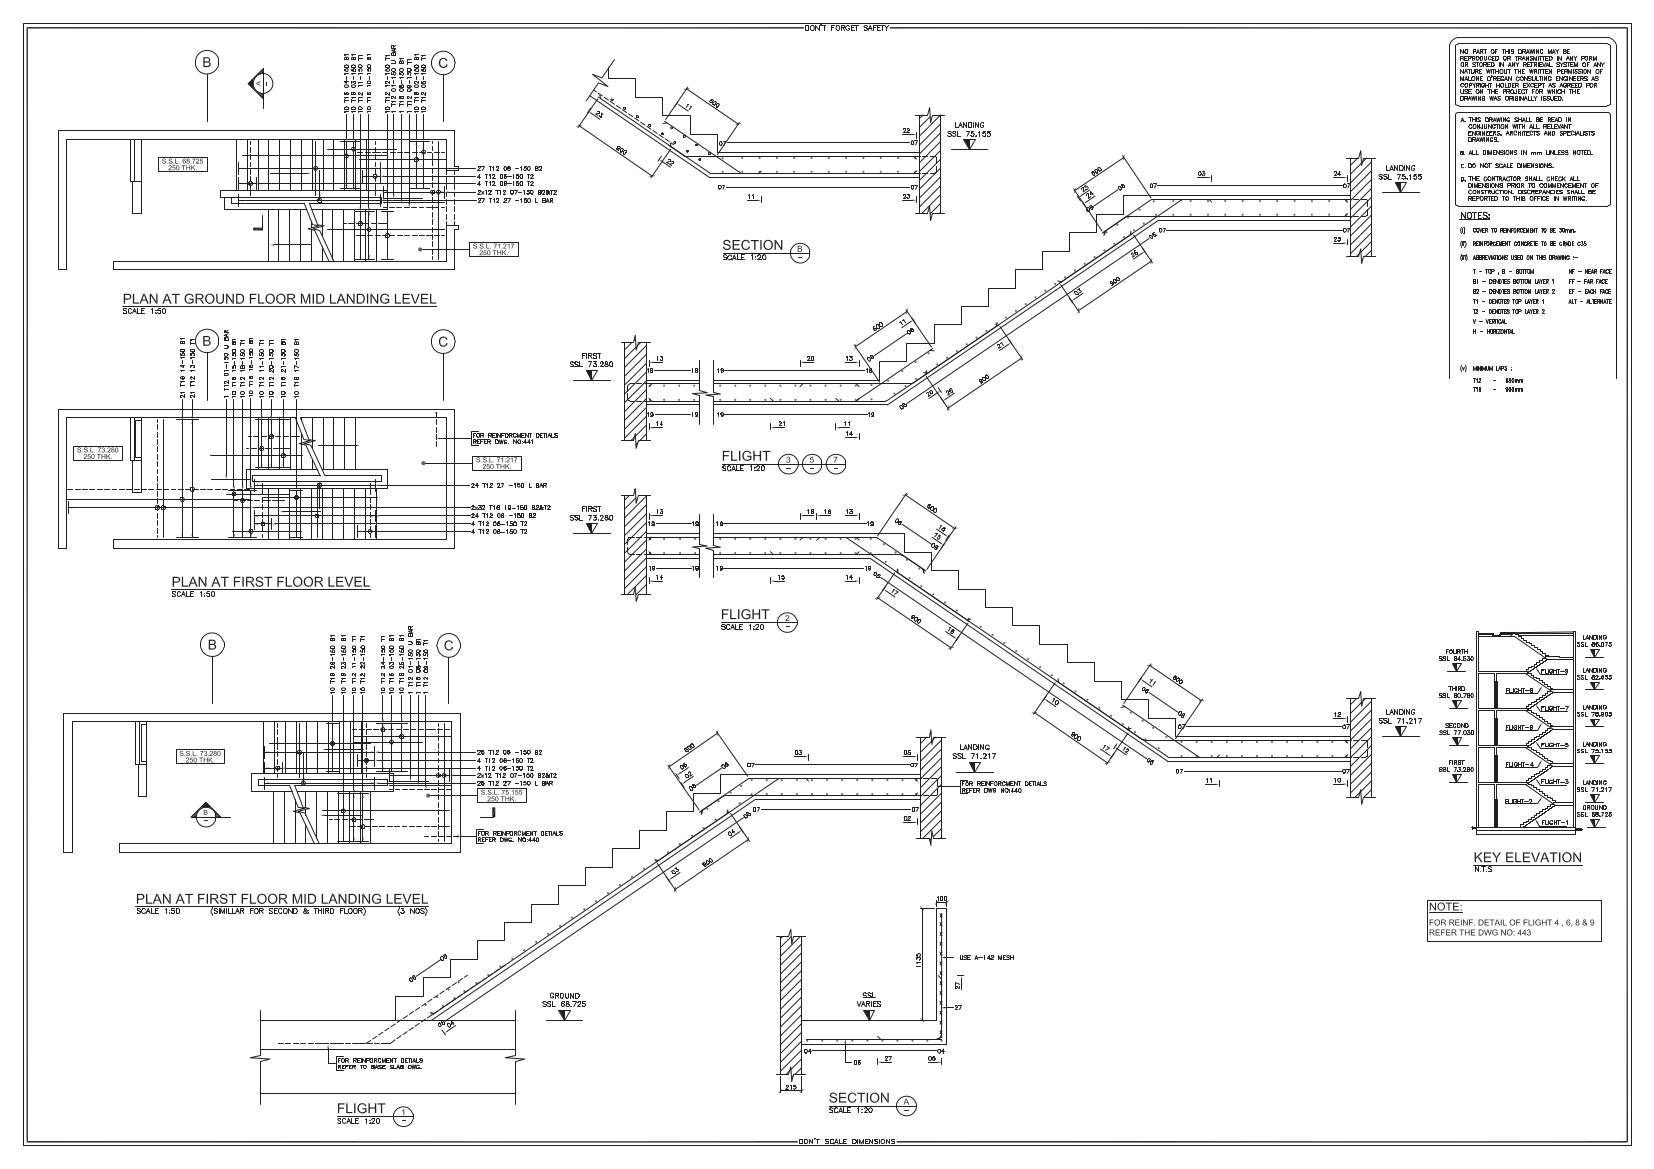 CADS RC sample drawings & Bar Bending Schedules - CADS UK